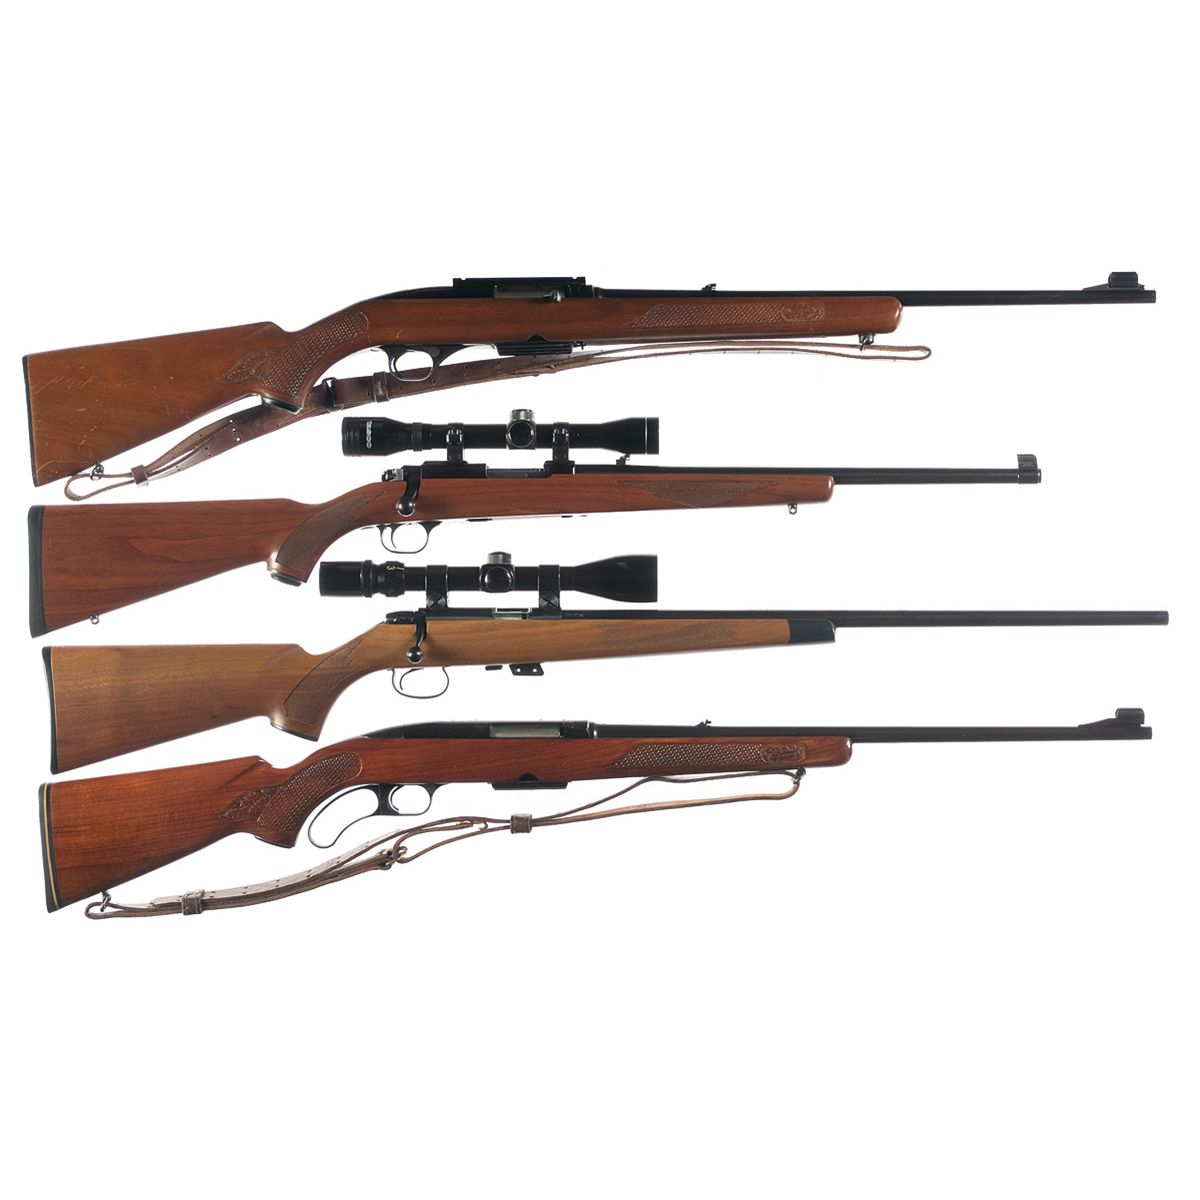 four sporting rifles a winchester model 100 semi automatic rifle